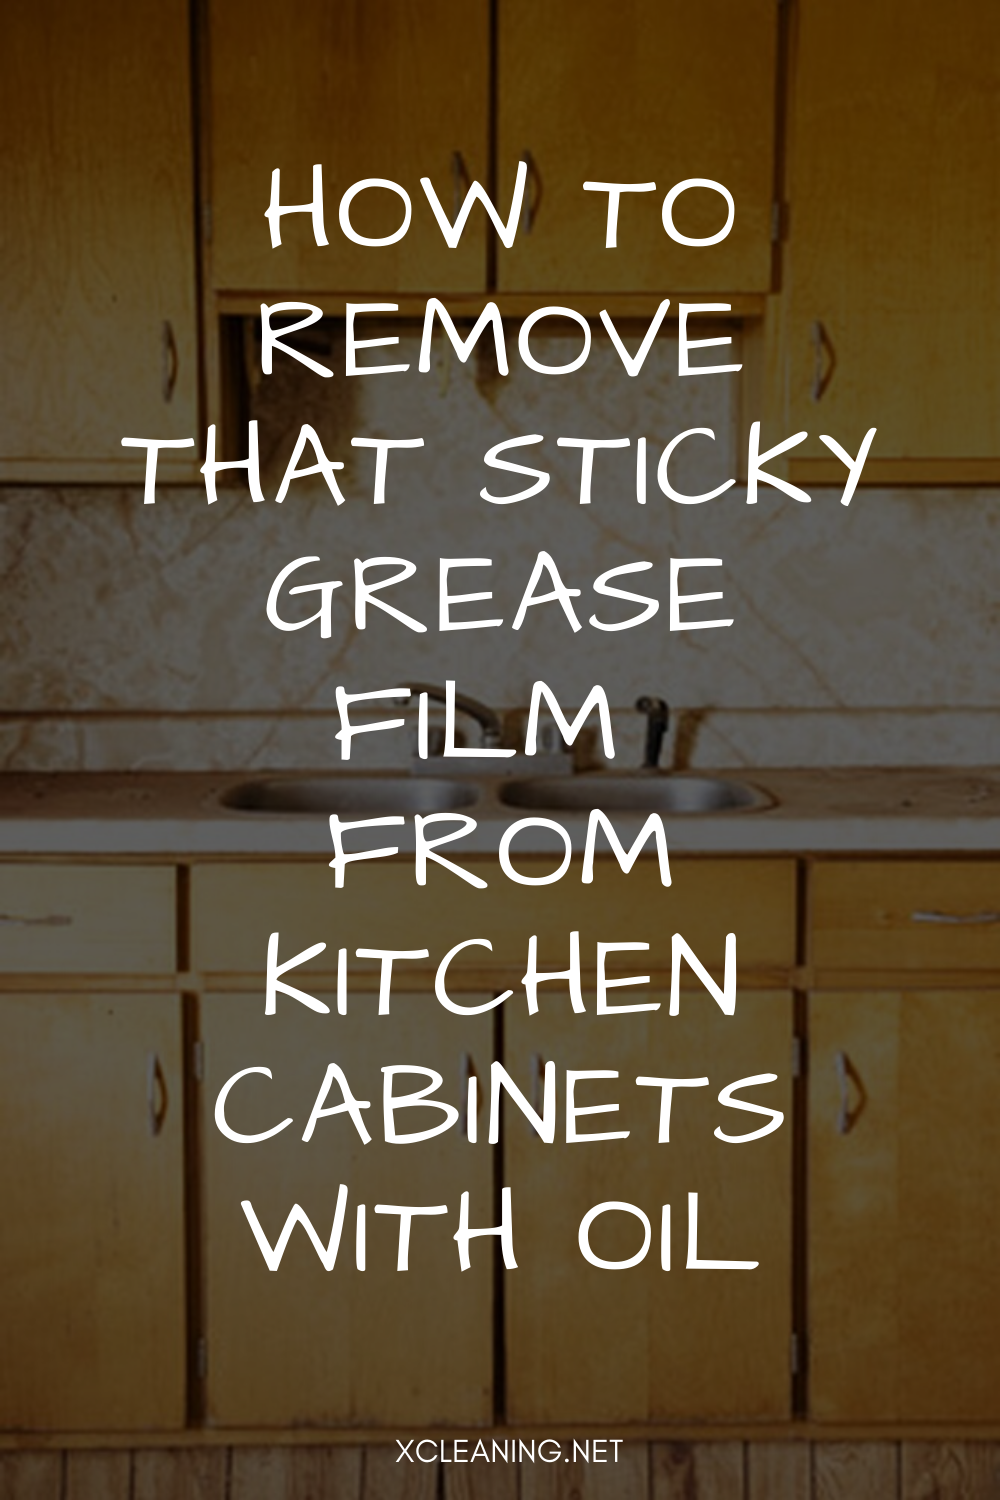 Oil Makes It Oil Breaks It How To Remove That Sticky Grease Film From Kitchen Cabinets With Oil Xcleaning In 2020 Kitchen Cabinets Cleaning Cabinets Cleaning Grease